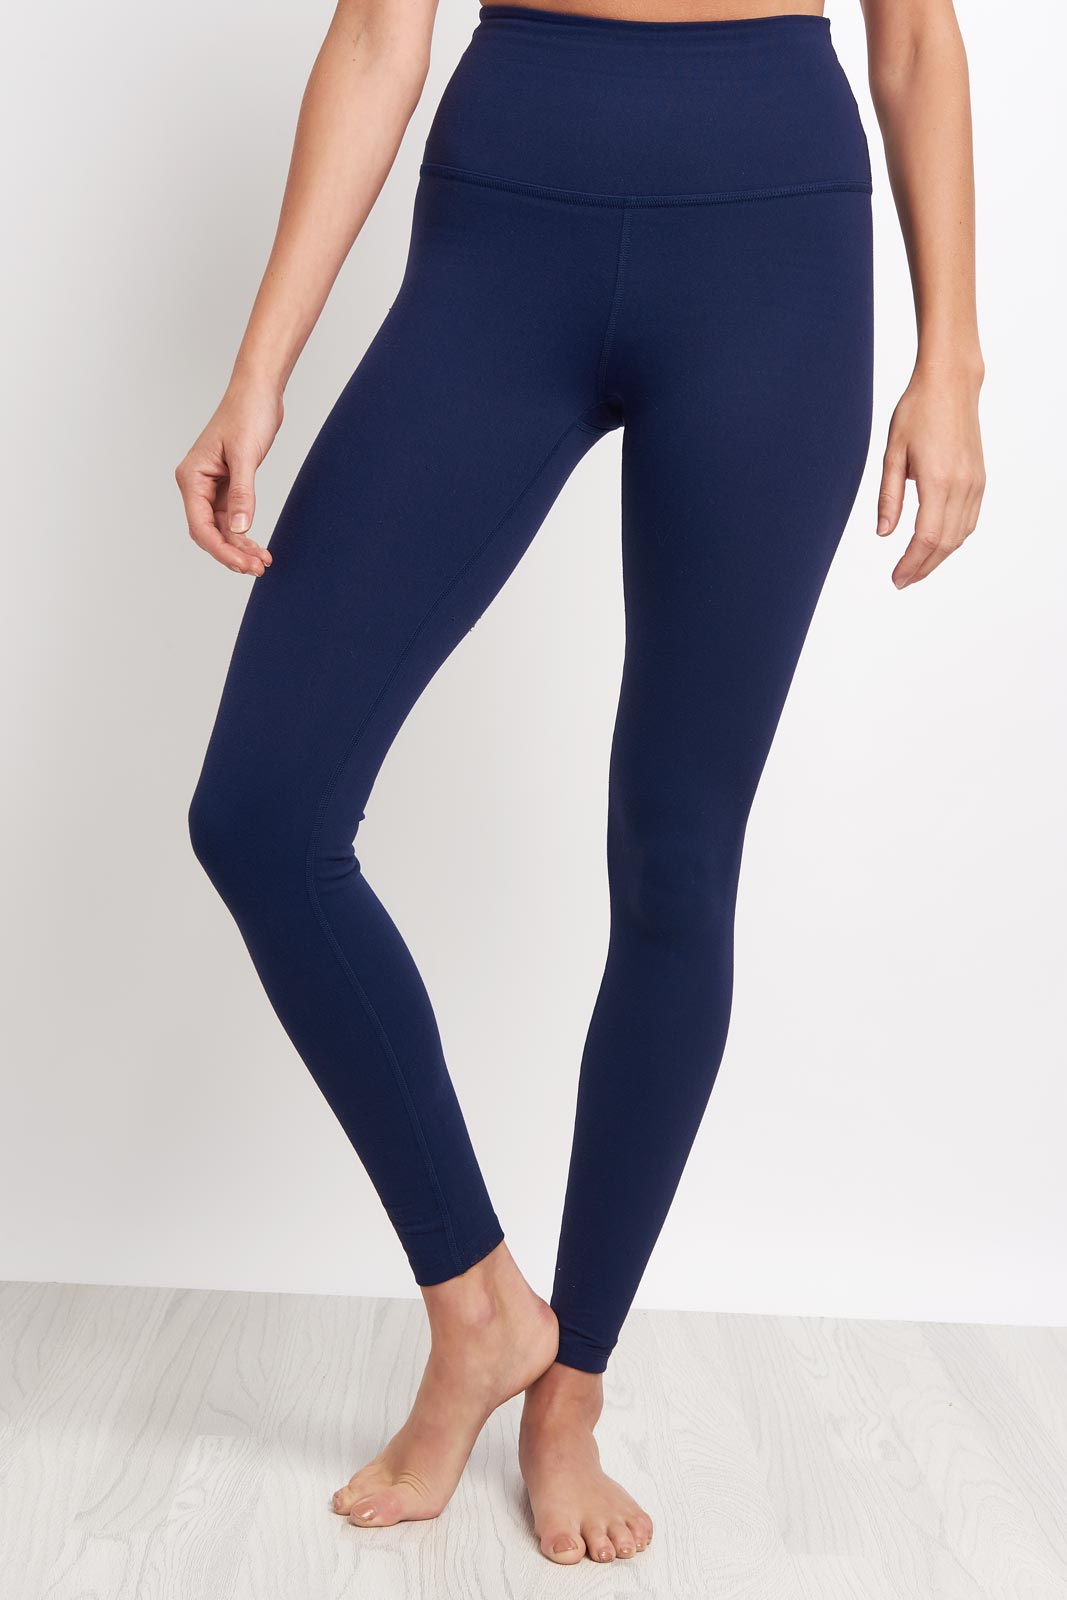 Beyond Yoga High Waist Legging - Valor Navy image 1 - The Sports Edit